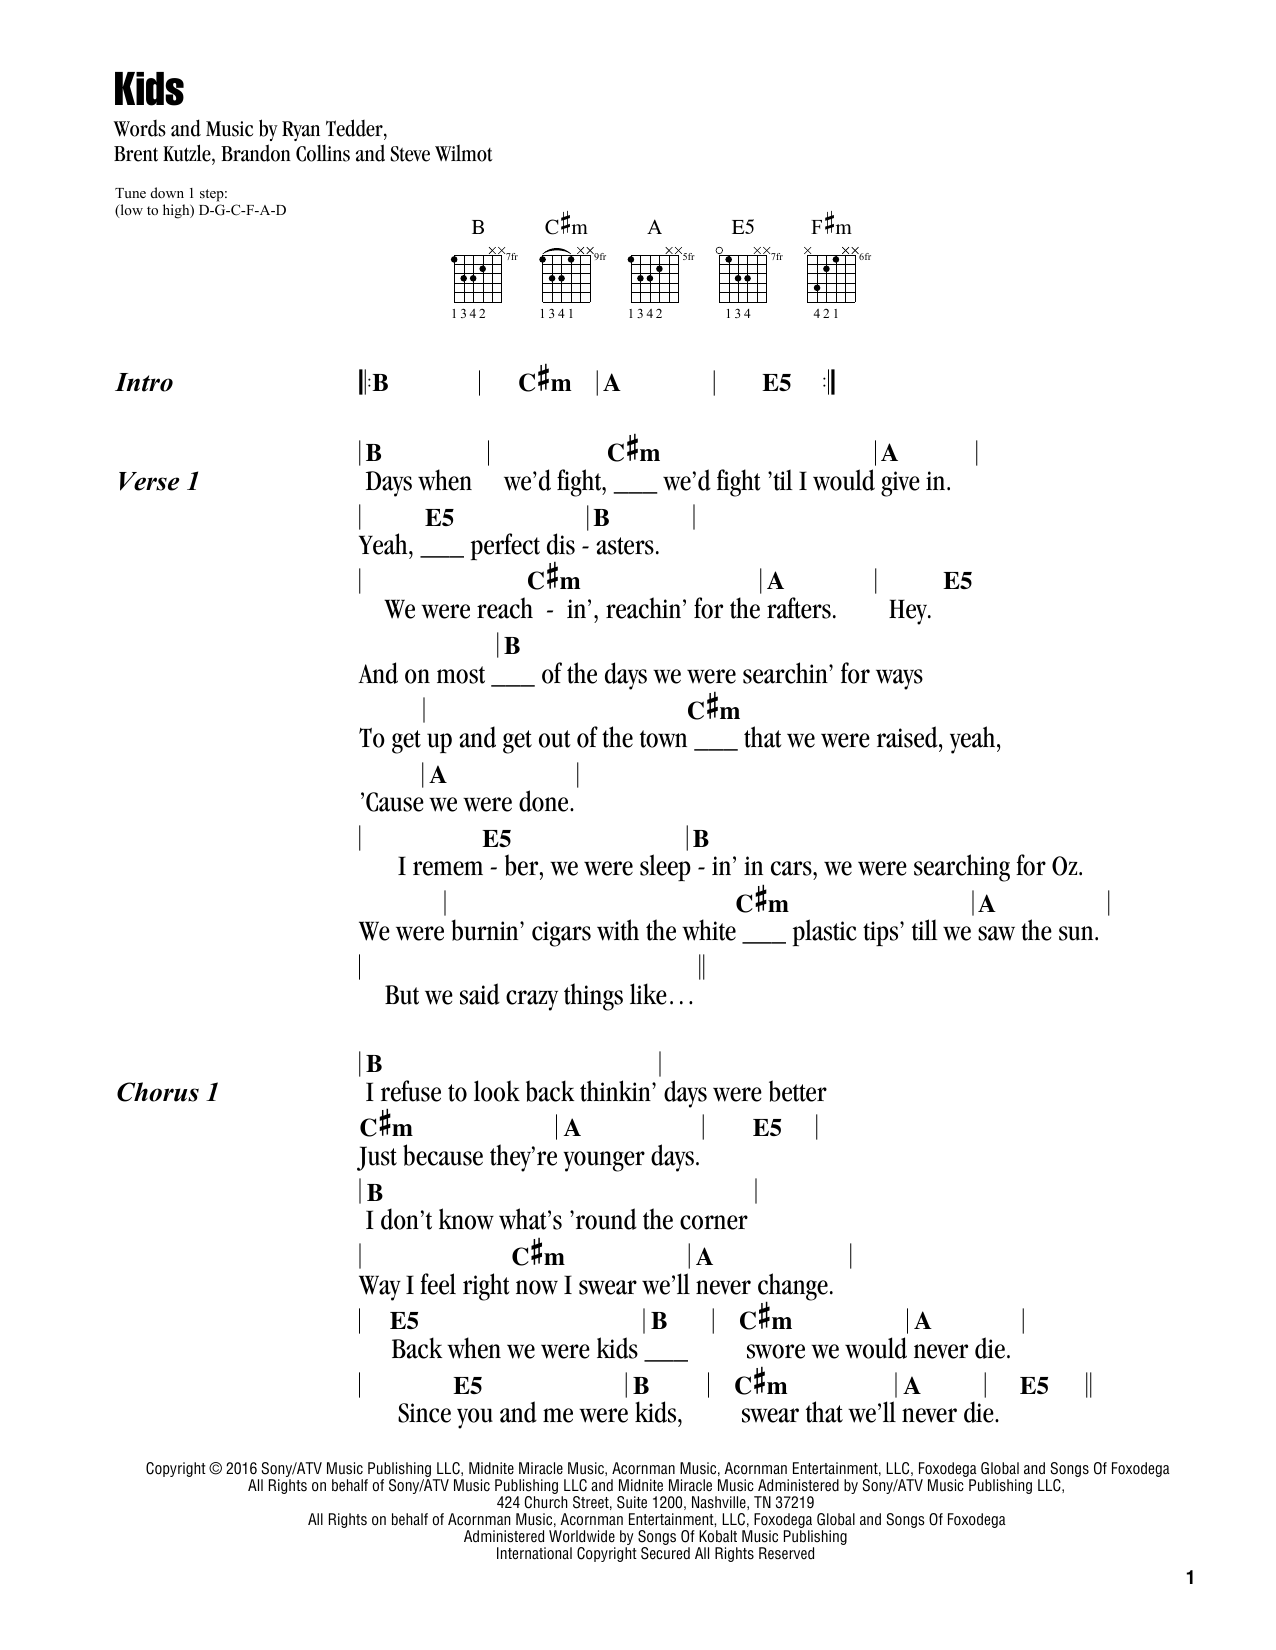 Kids (Guitar Chords/Lyrics)